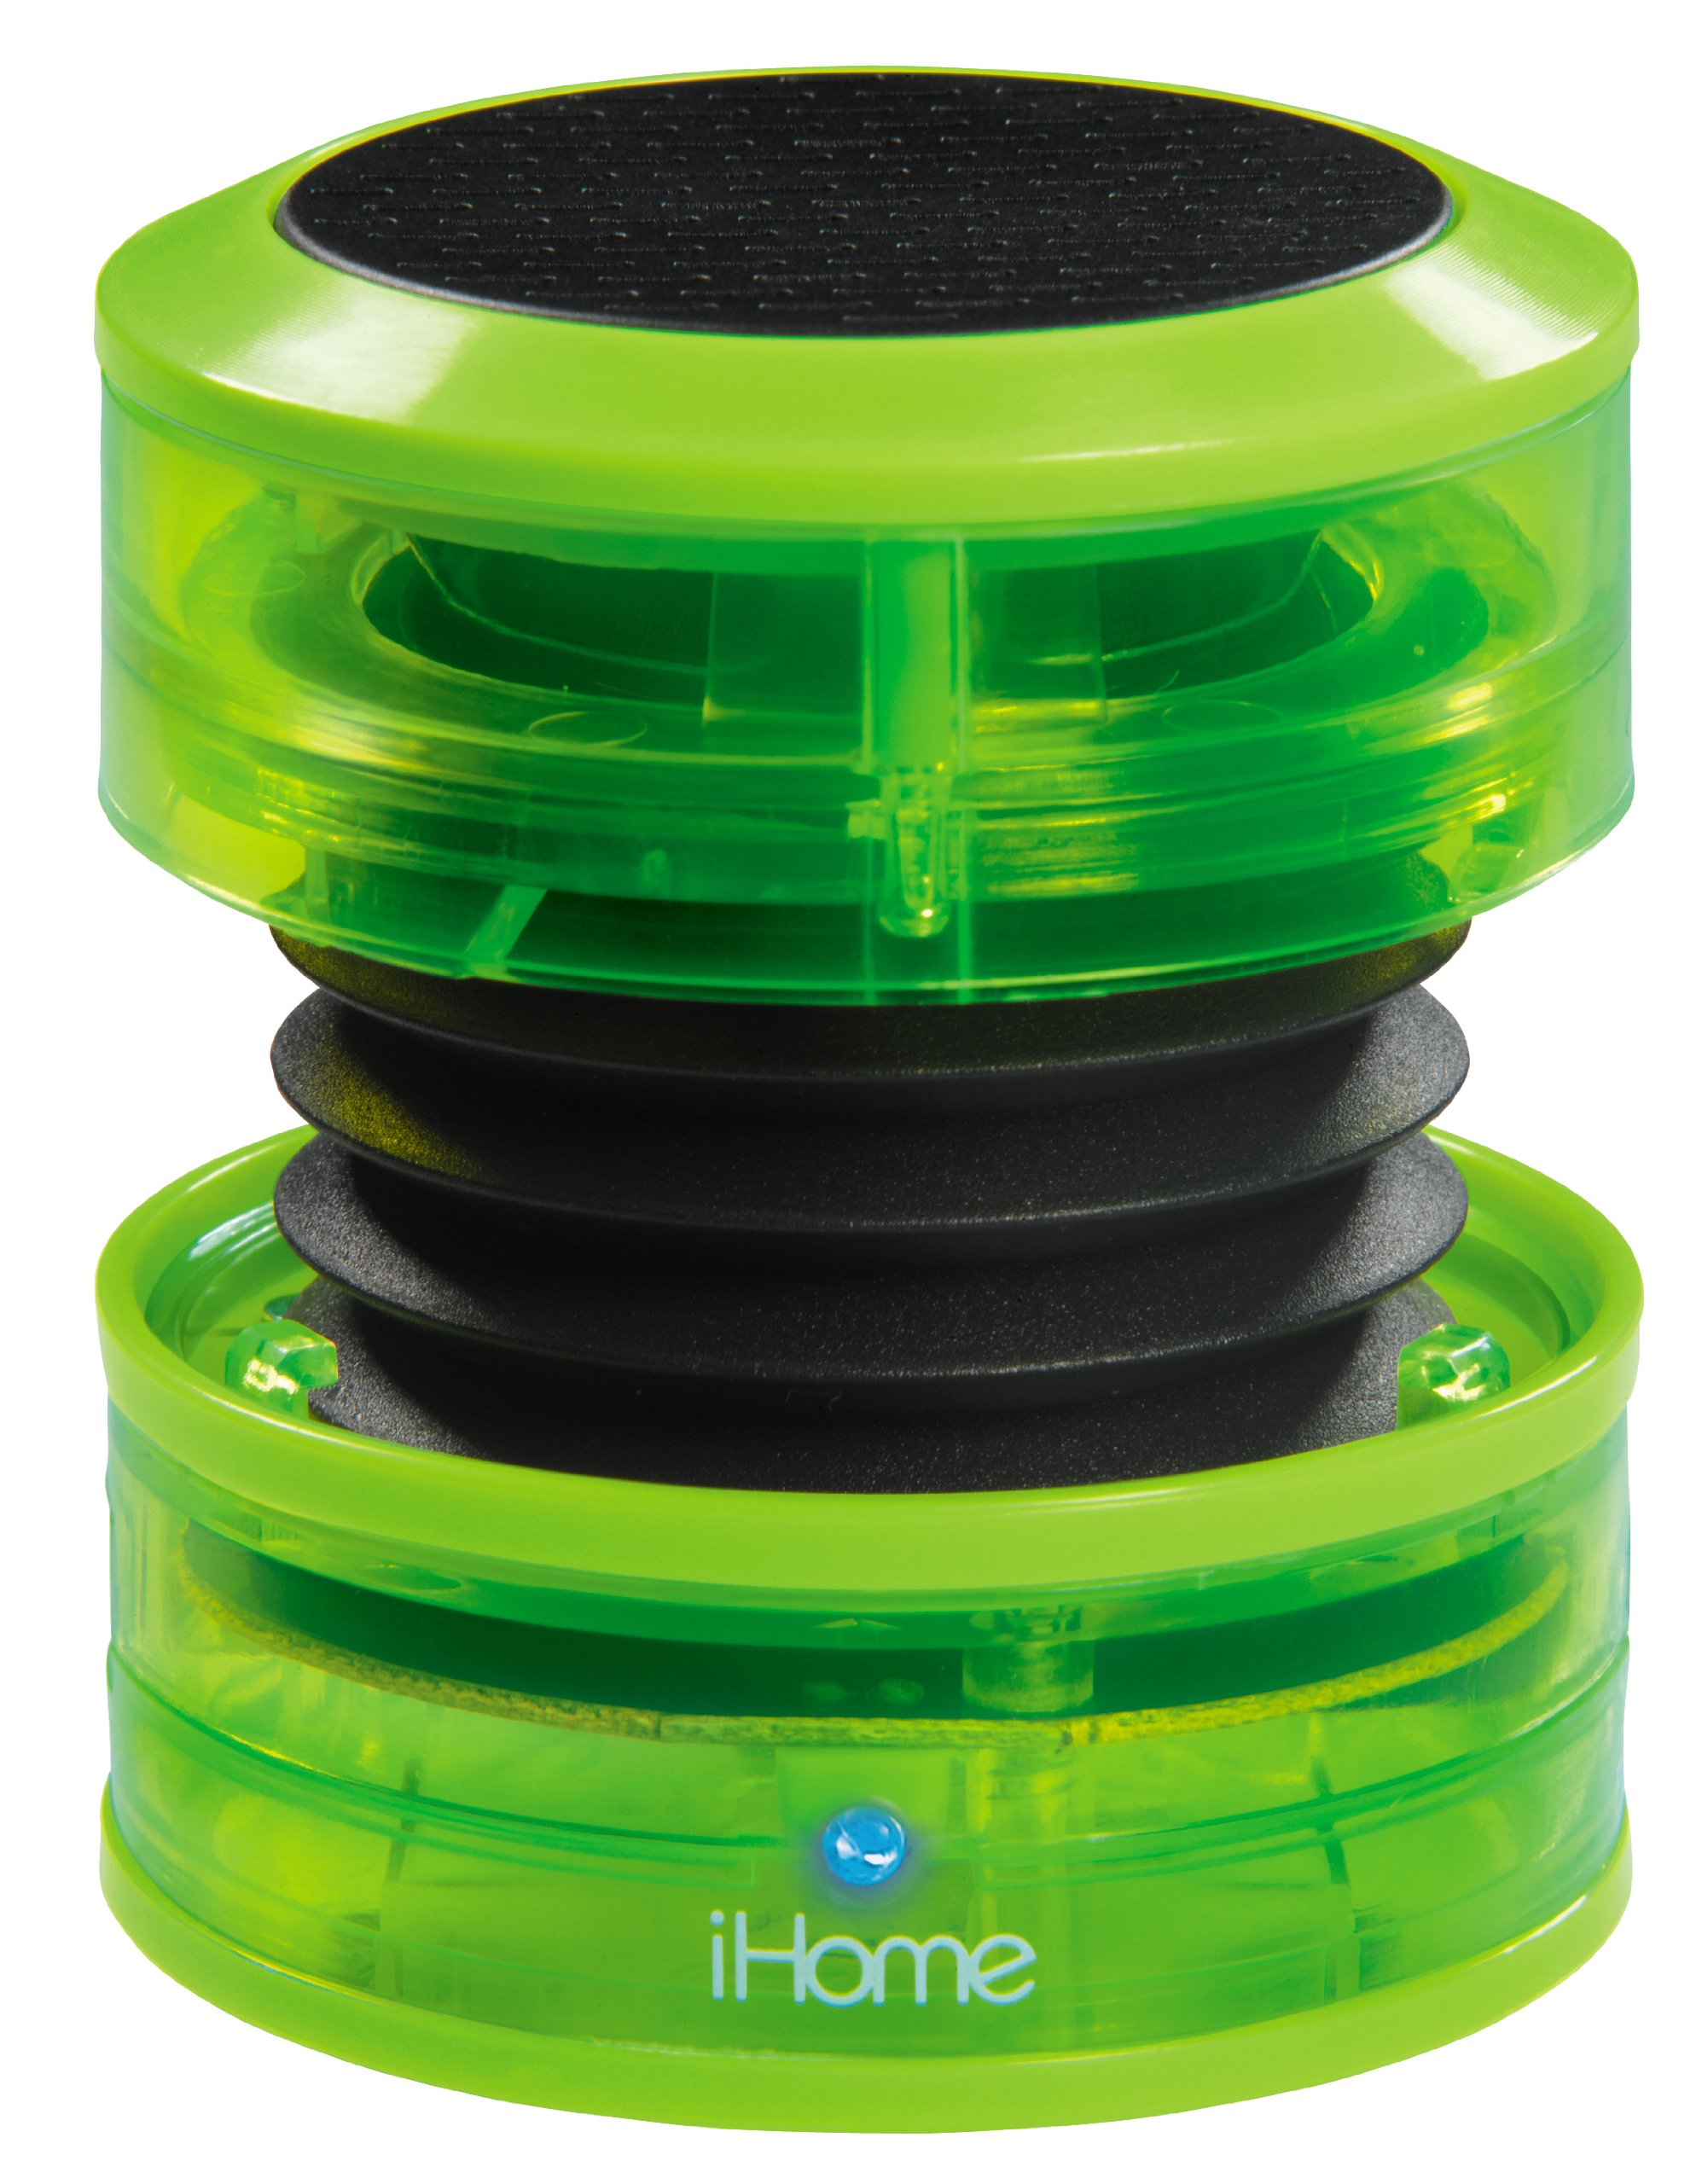 iHome IM60QN Rechargeable Mini Speaker - Green by iHome